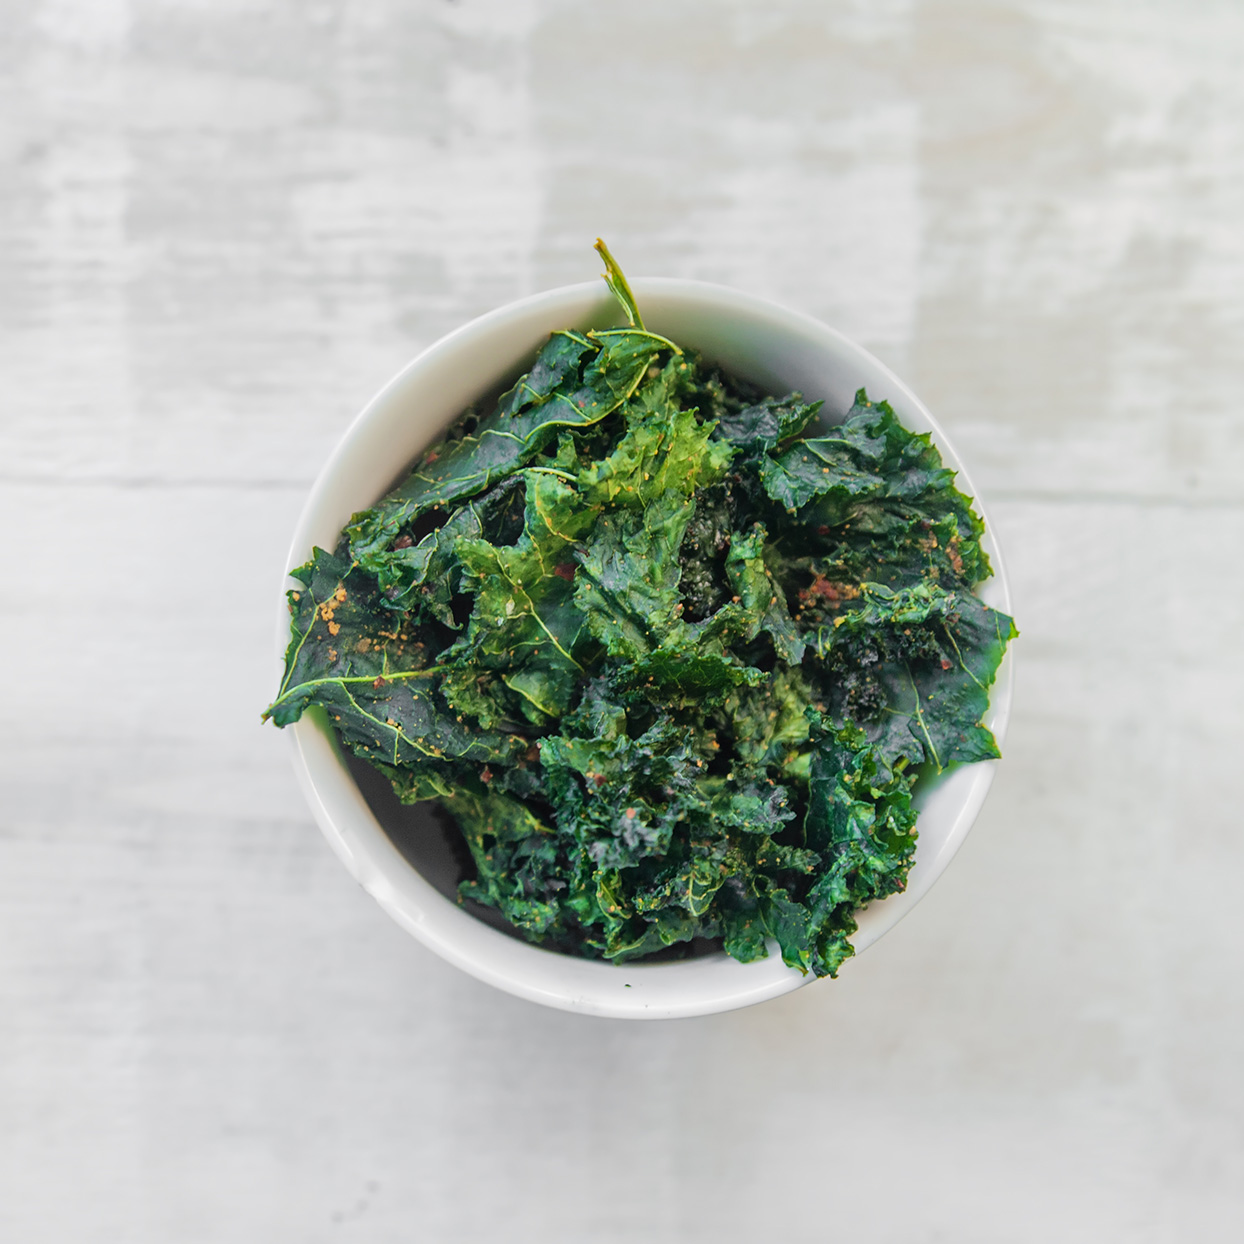 Healthy Snack: Kale Chips